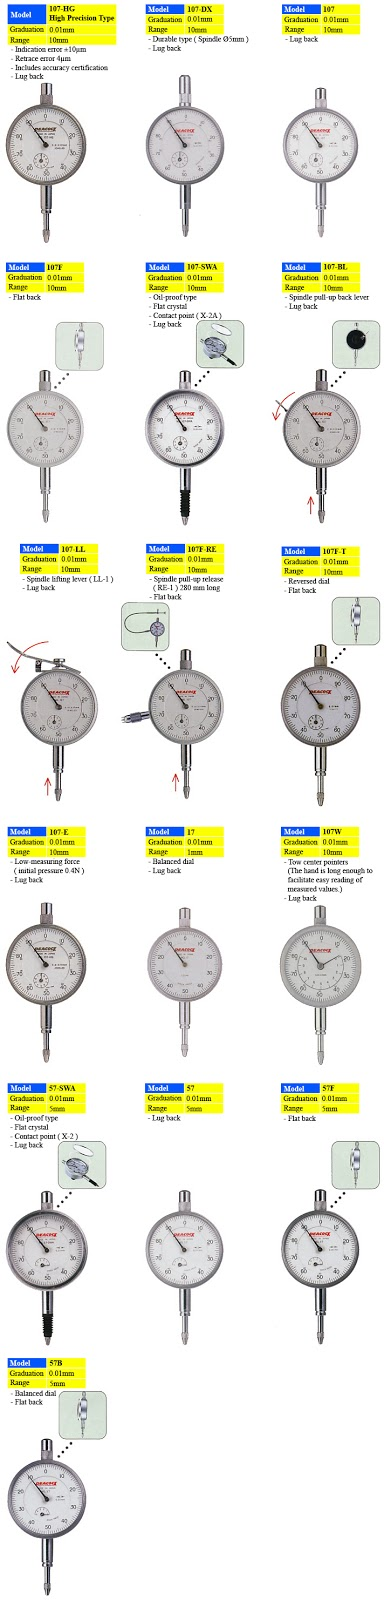 Jual Peacock Standard Dial Gauges 0.01mm